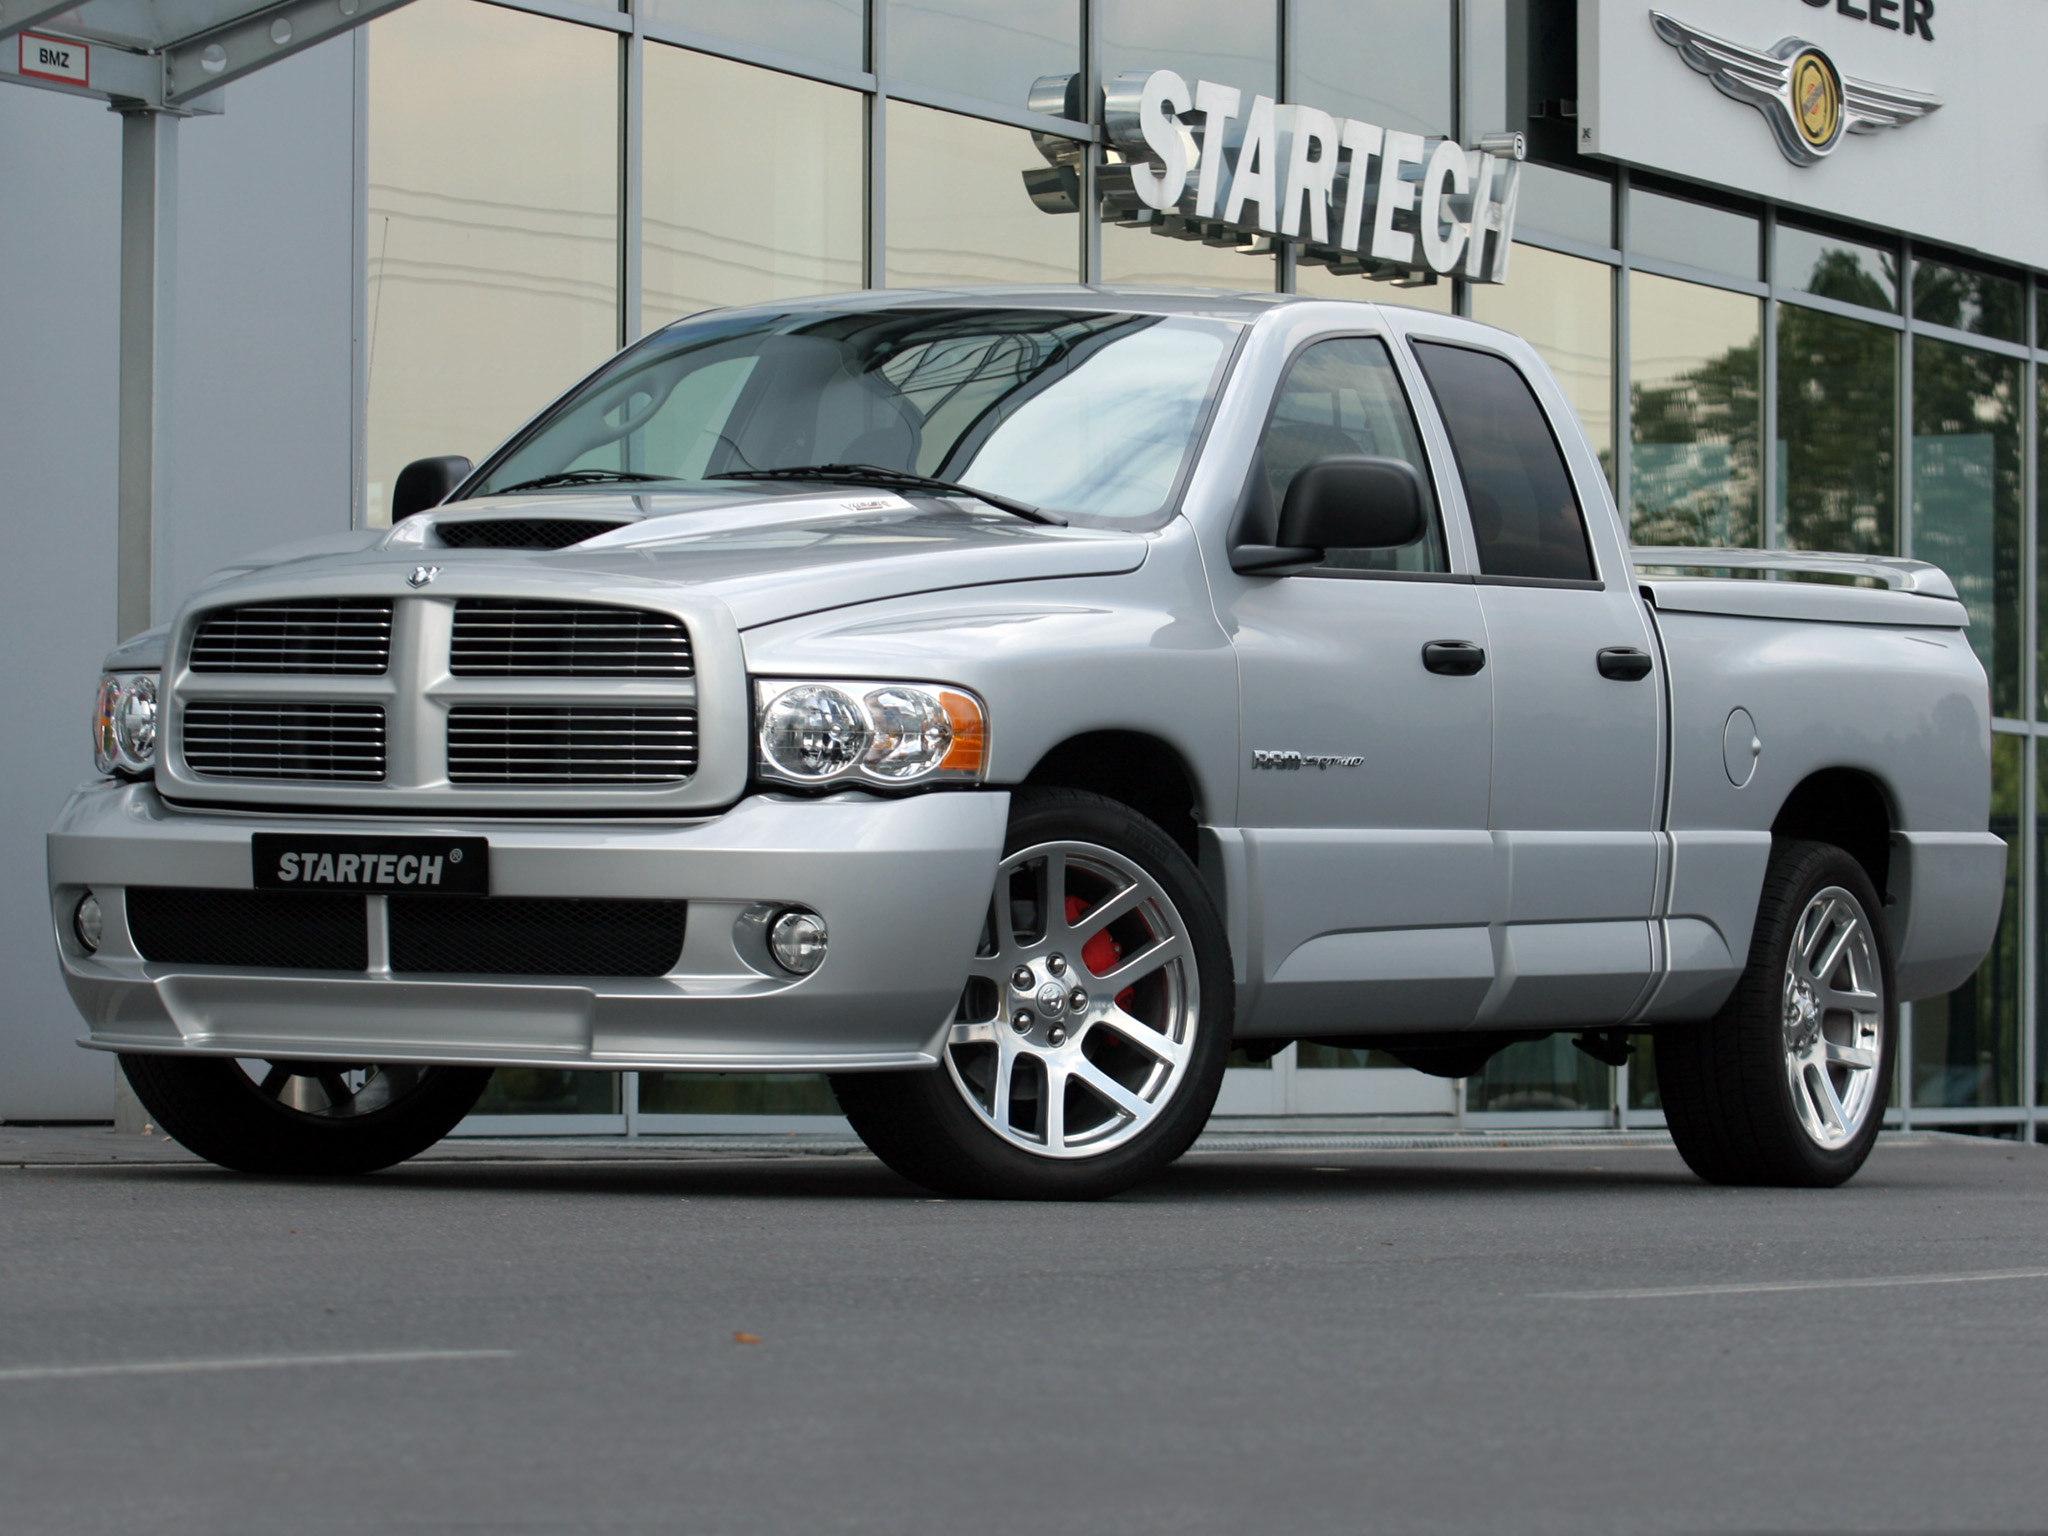 2019 Dodge Ram Quad Cab | Car Photos Catalog 2019